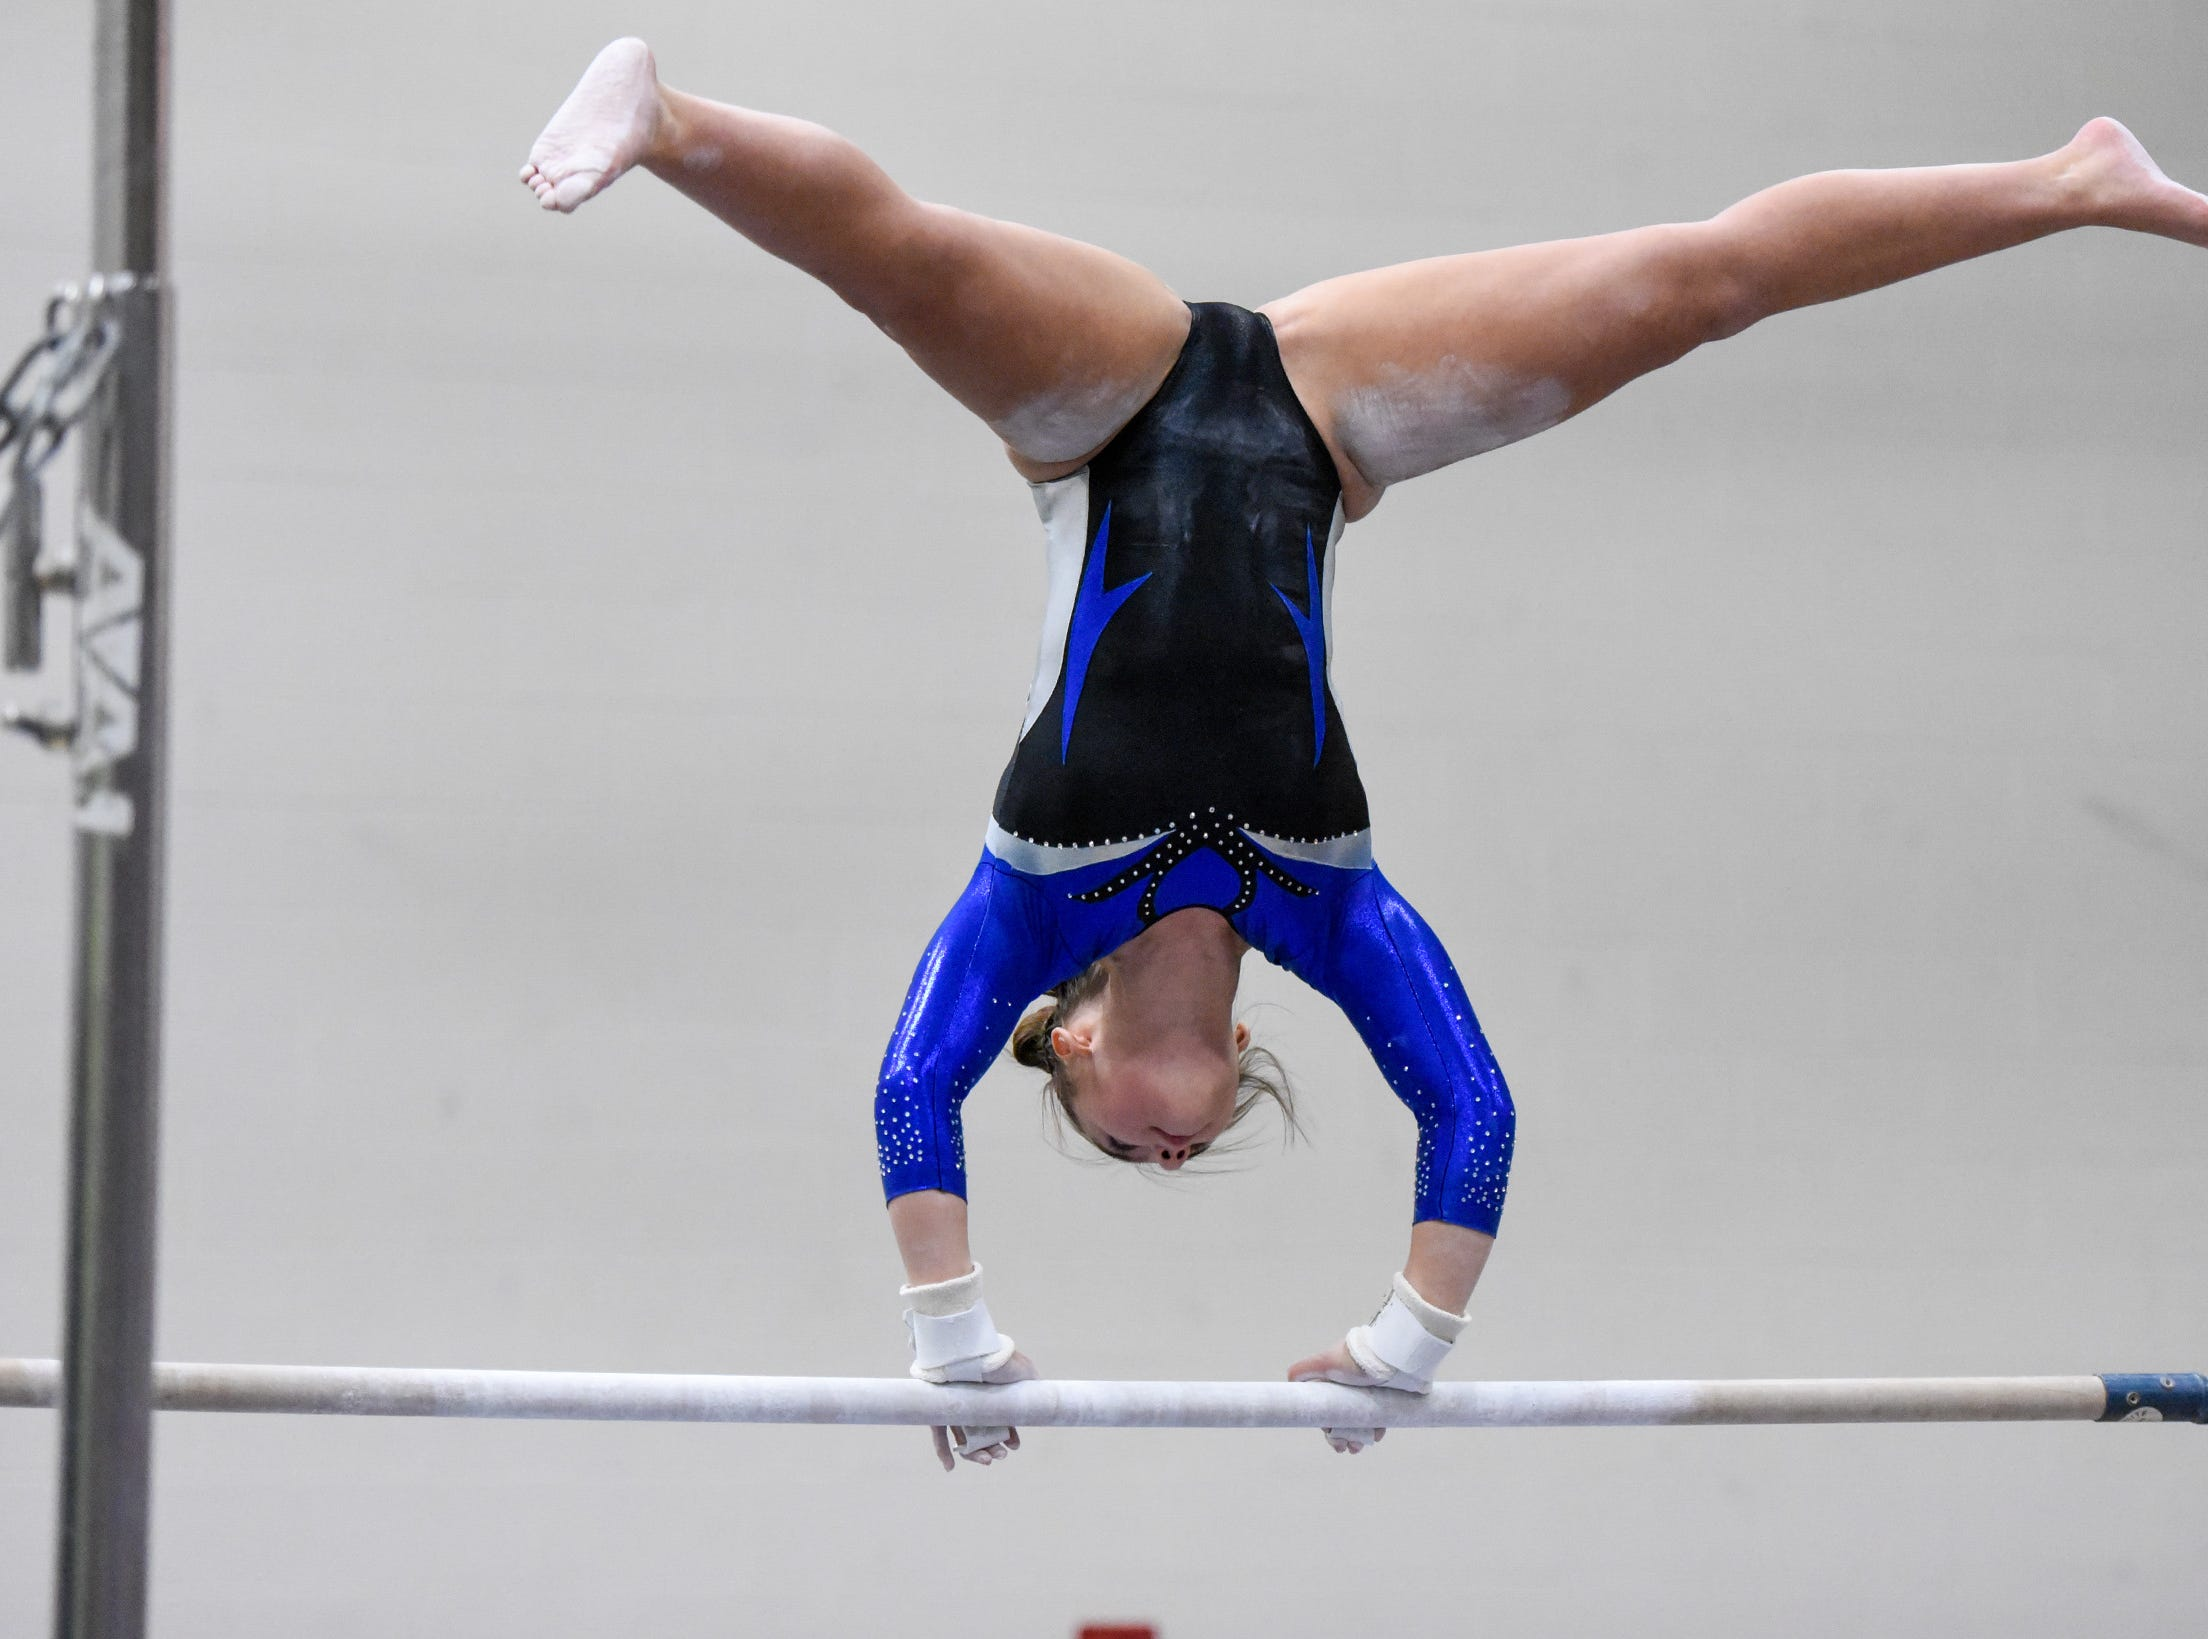 Sartell's Carley Yang competes on the bars Thursday, Jan. 3, at the Sauk Rapids-Rice High School.